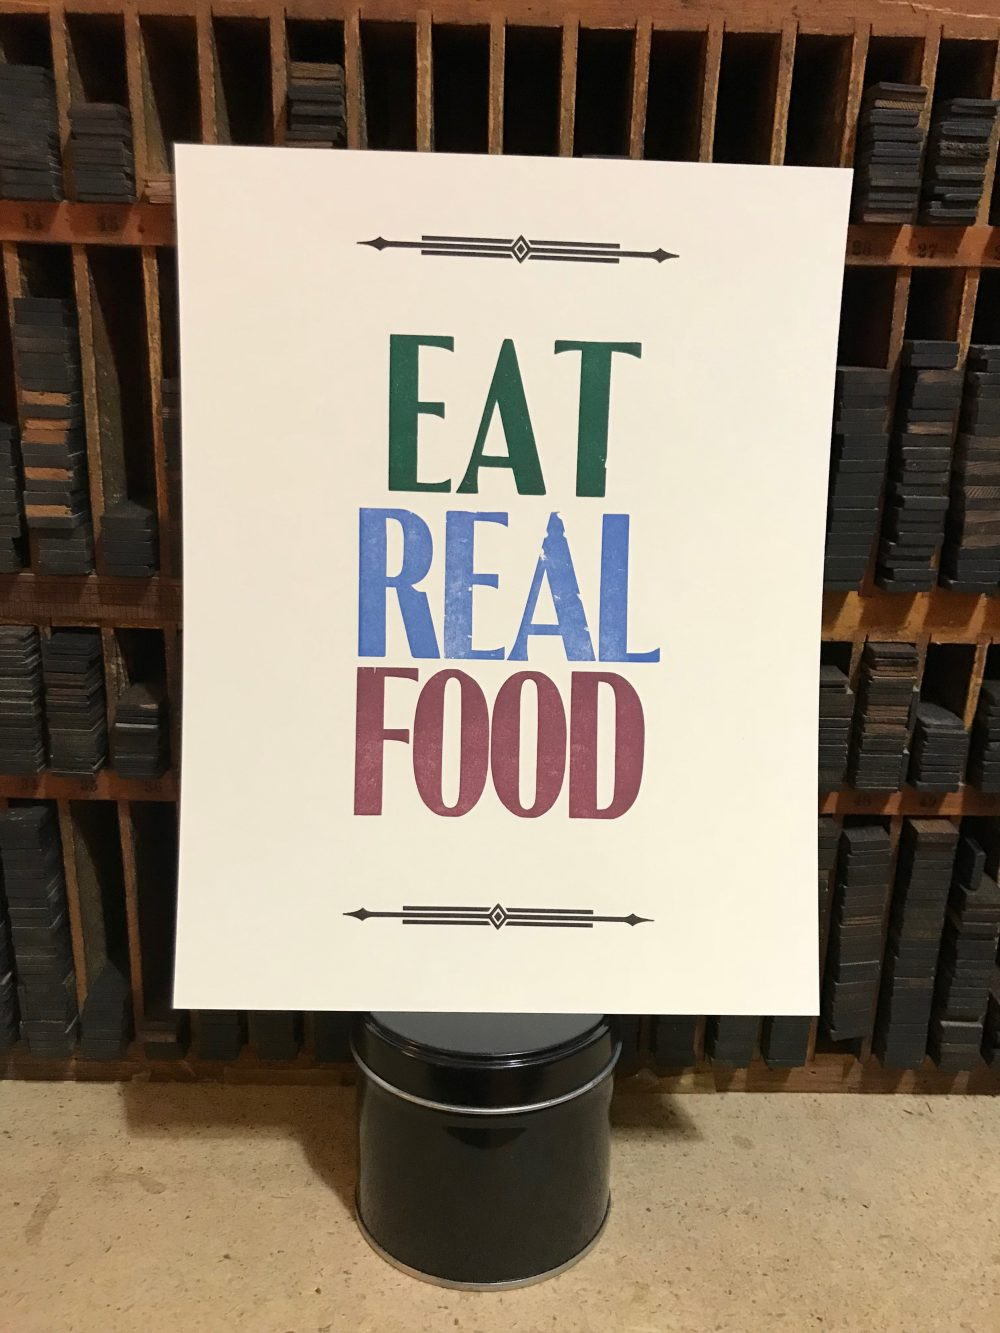 kidd- Eat Real Food